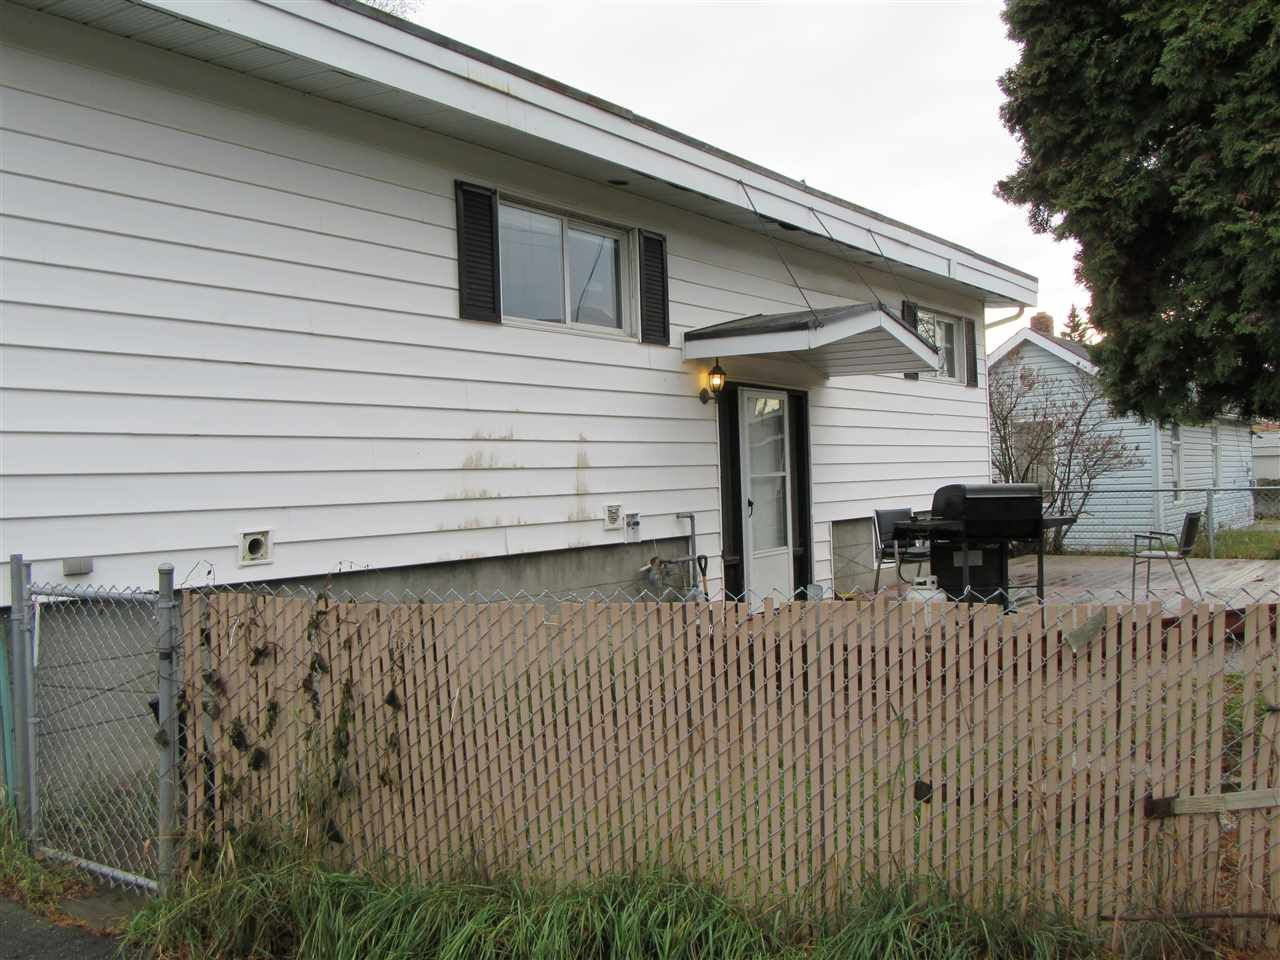 Photo 5: Photos: 1737 REDWOOD Street in Prince George: Van Bow House for sale (PG City Central (Zone 72))  : MLS®# R2417839